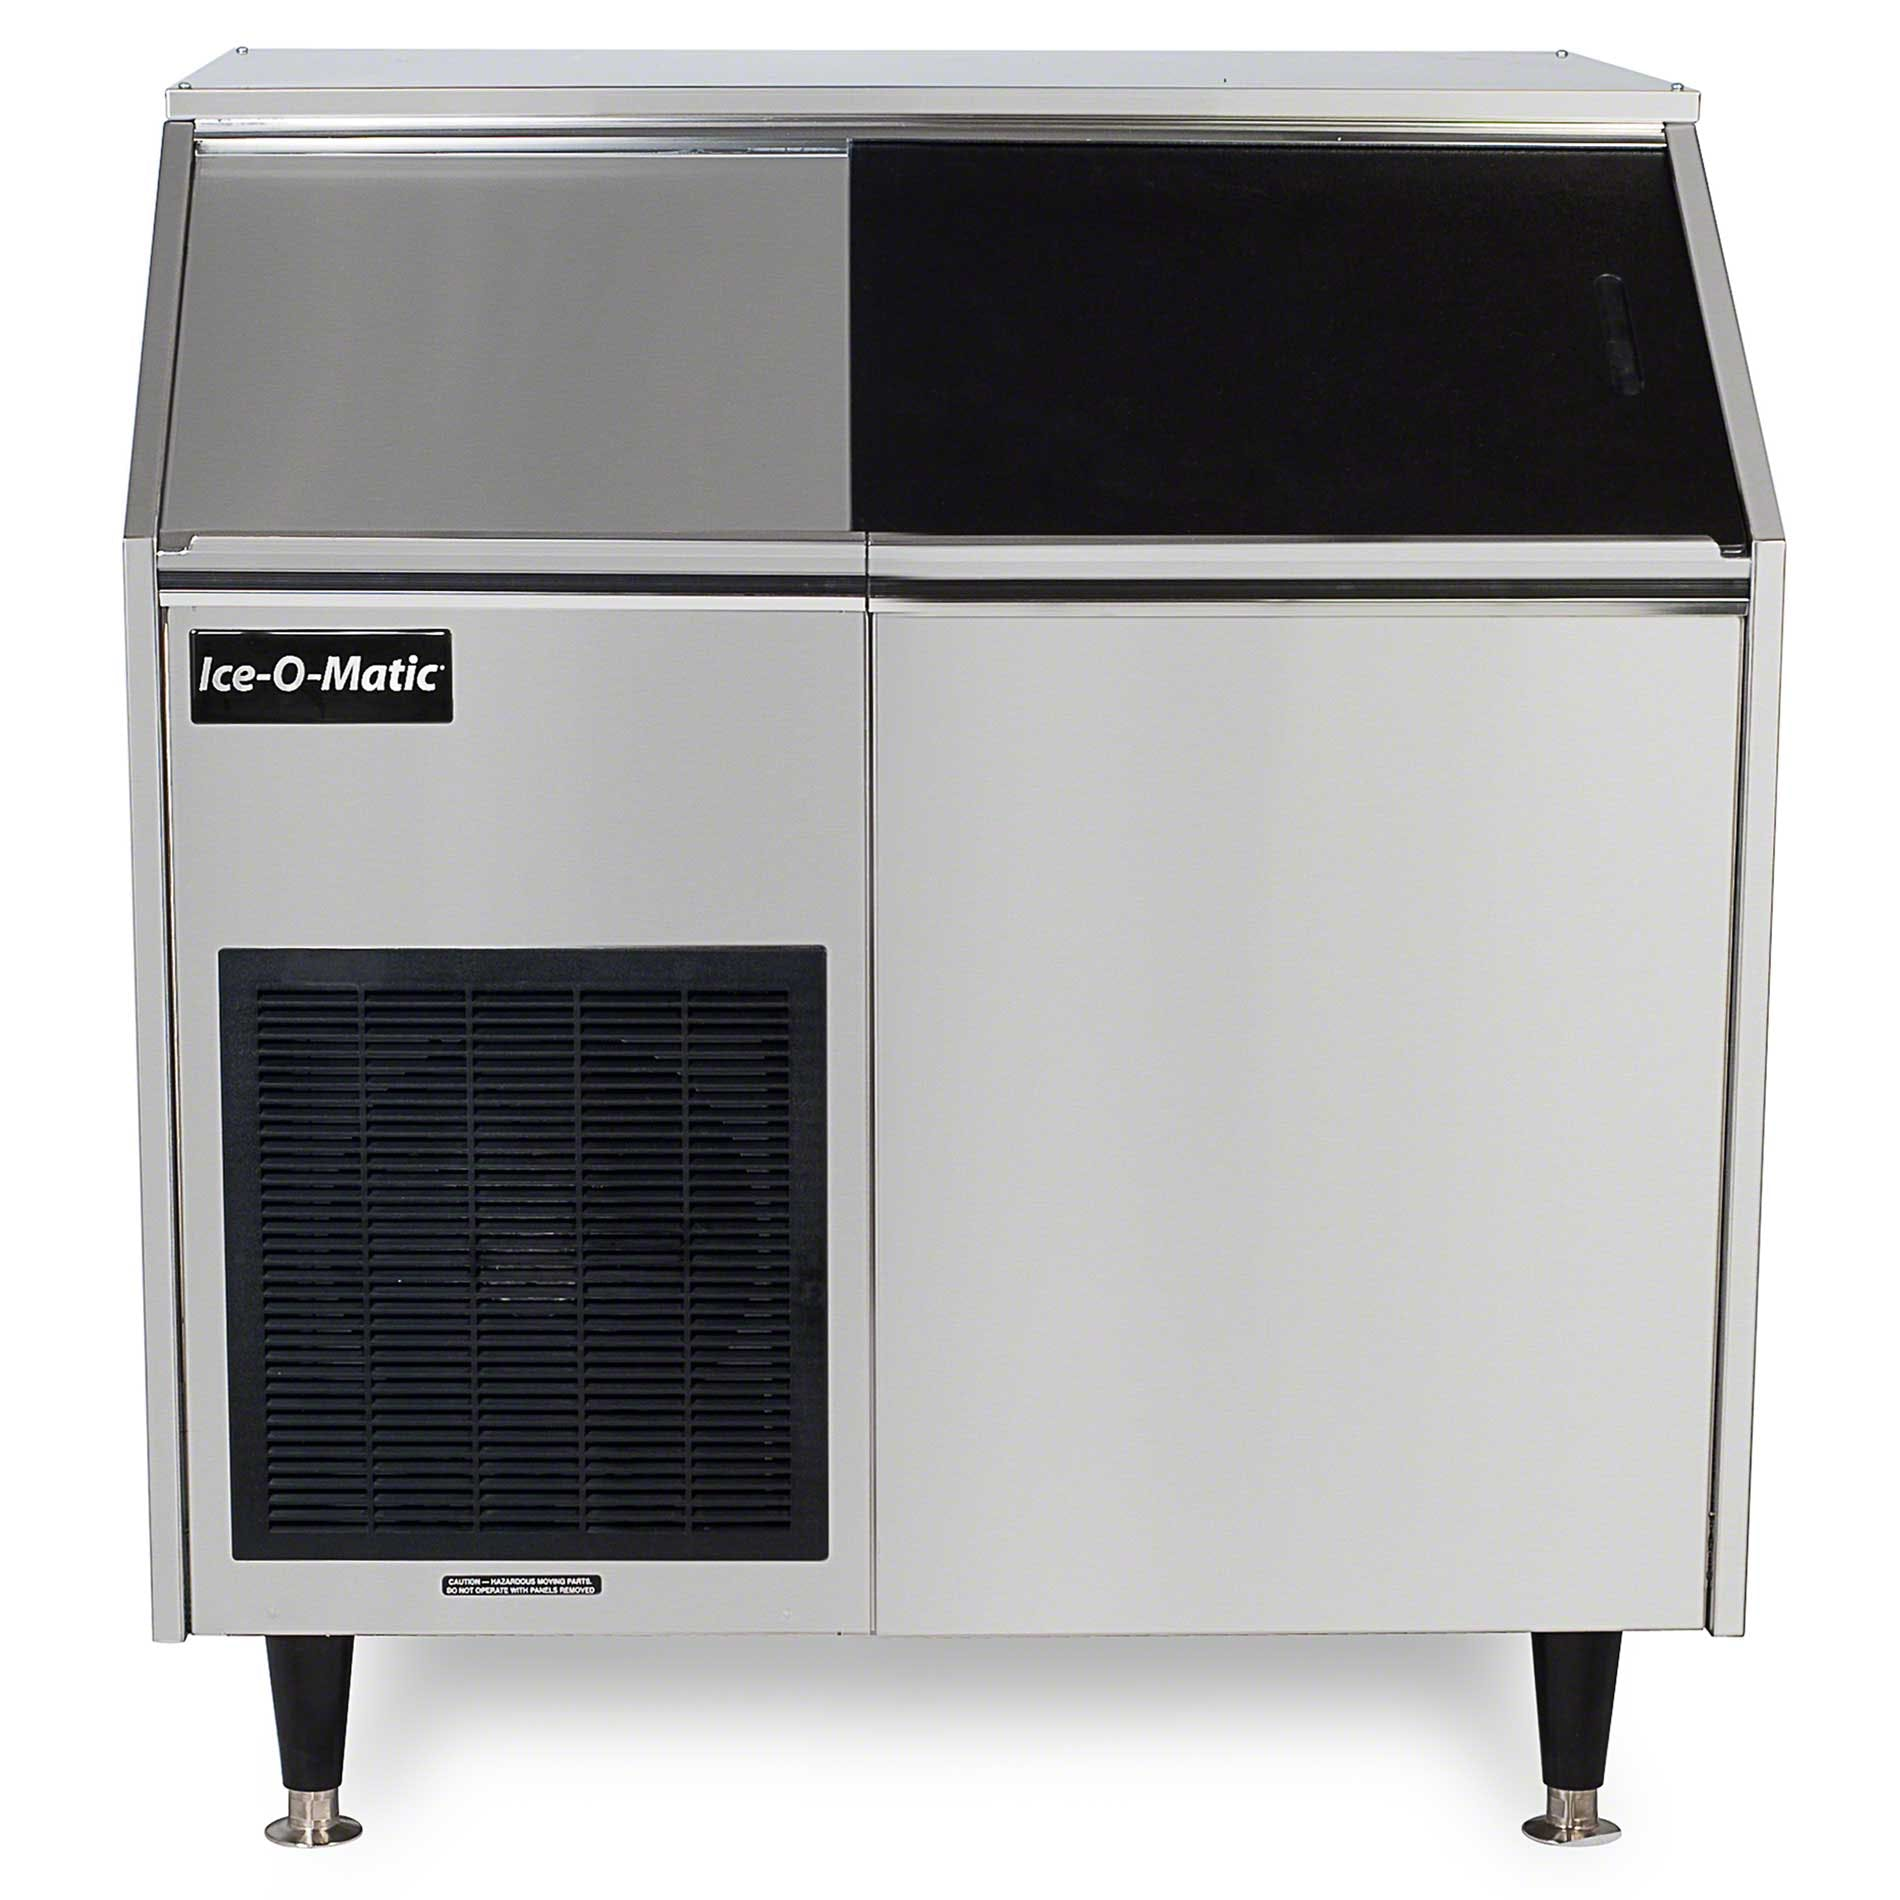 Ice-O-Matic - EF250A38S 400 lb Self-Contained Flake Ice Machine - sold by Food Service Warehouse